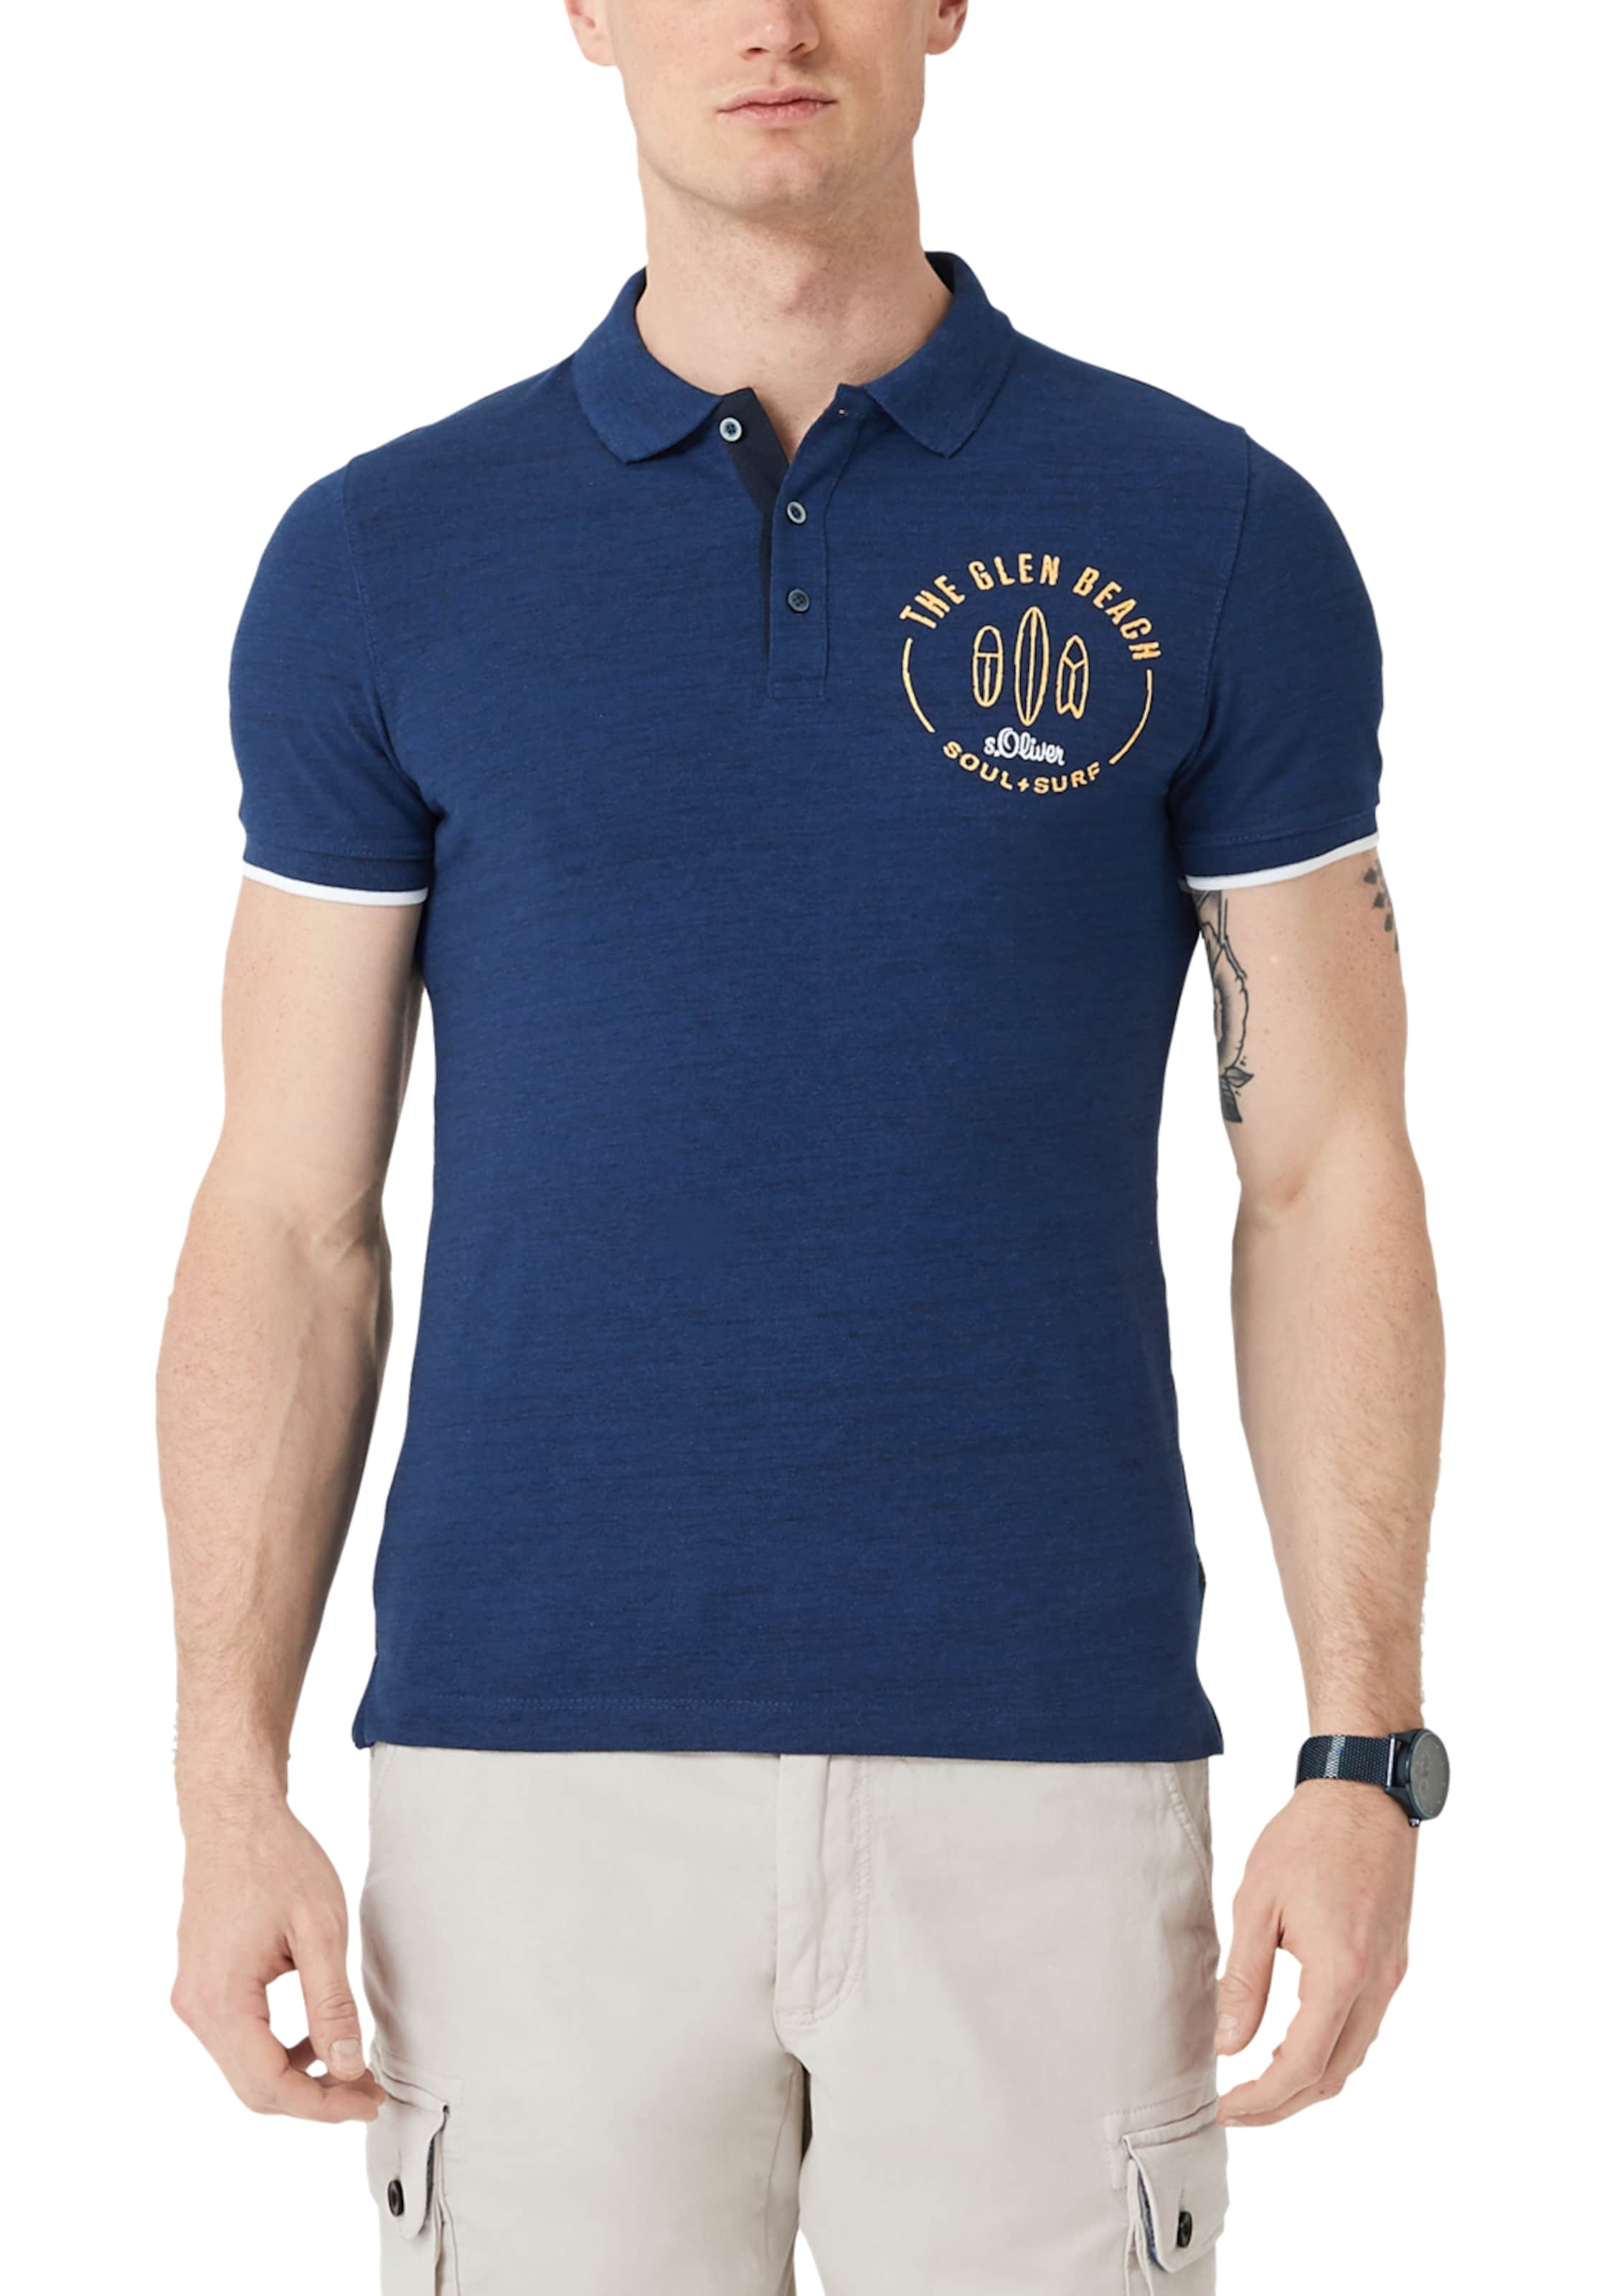 Blau Label S In oliver Red Poloshirt 1FKuT5lJc3